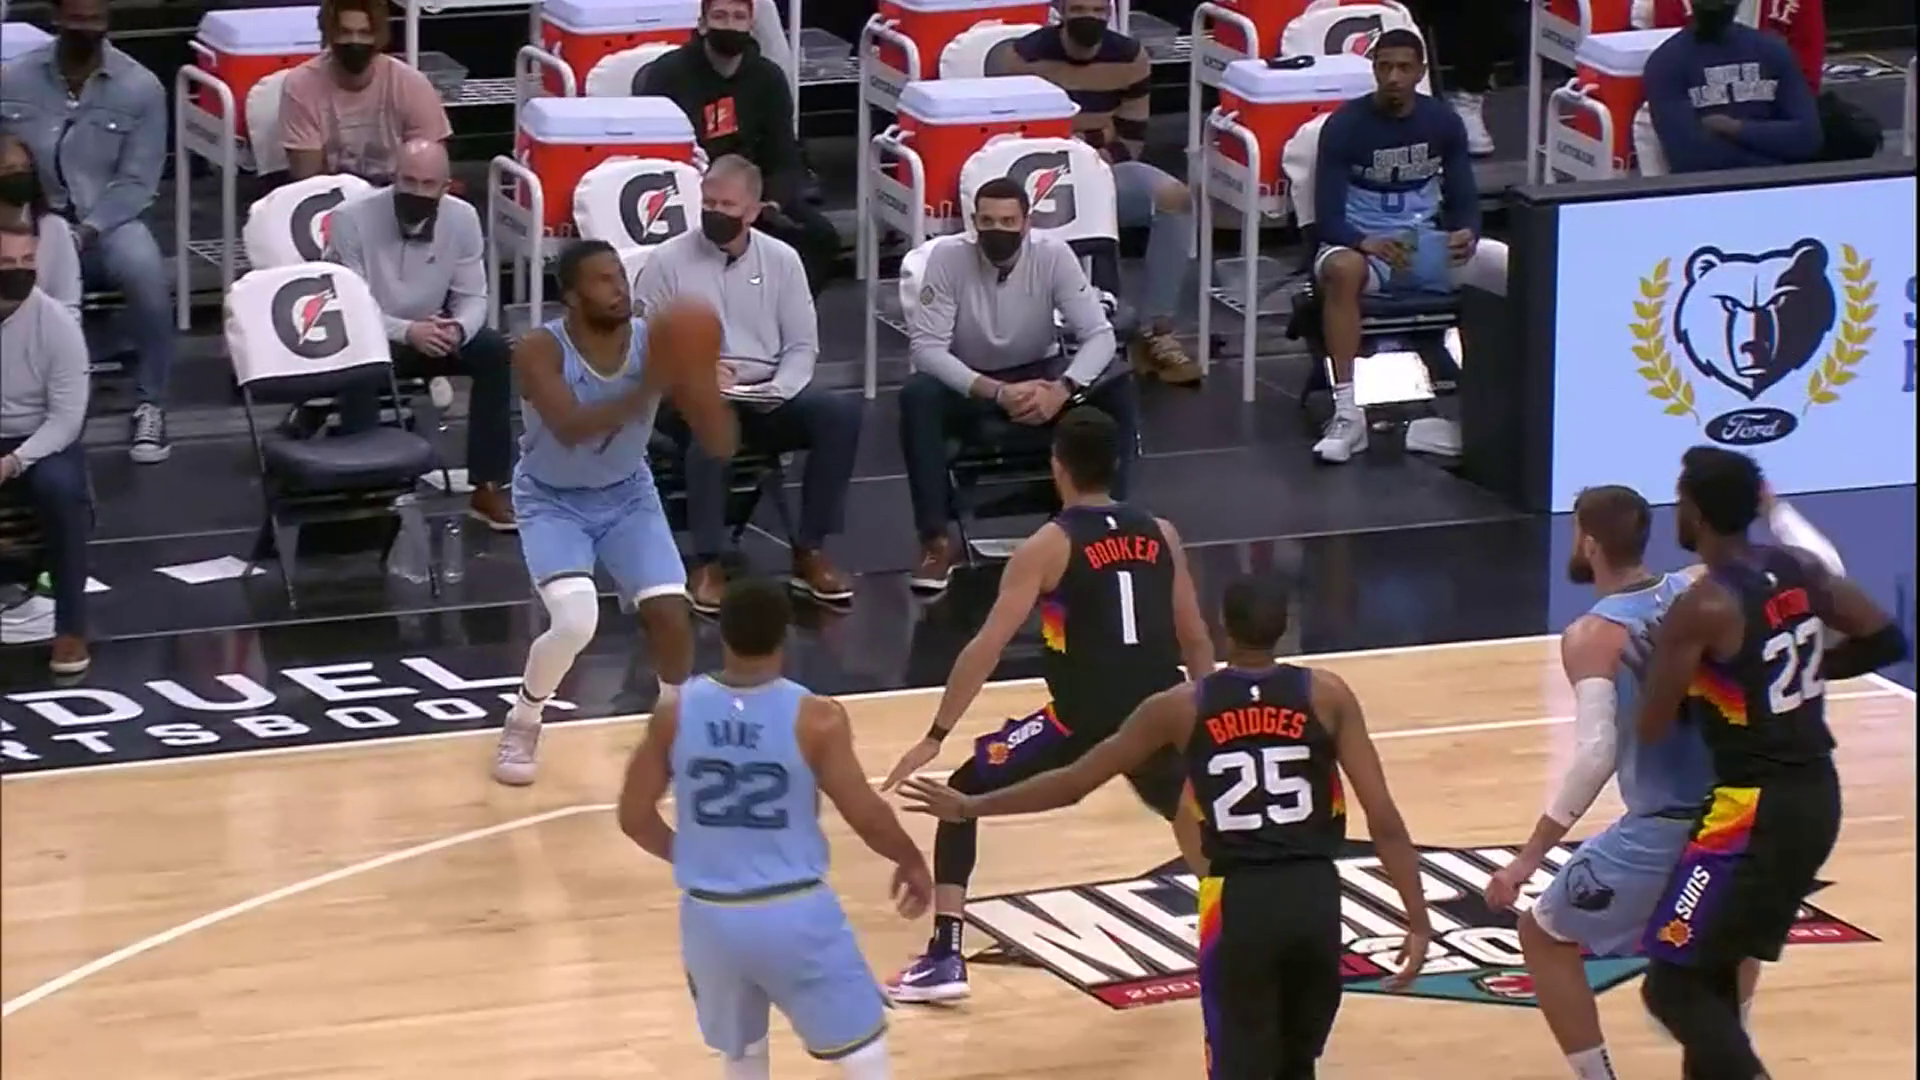 Justise Winslow scores his first points for the Grizzlies!